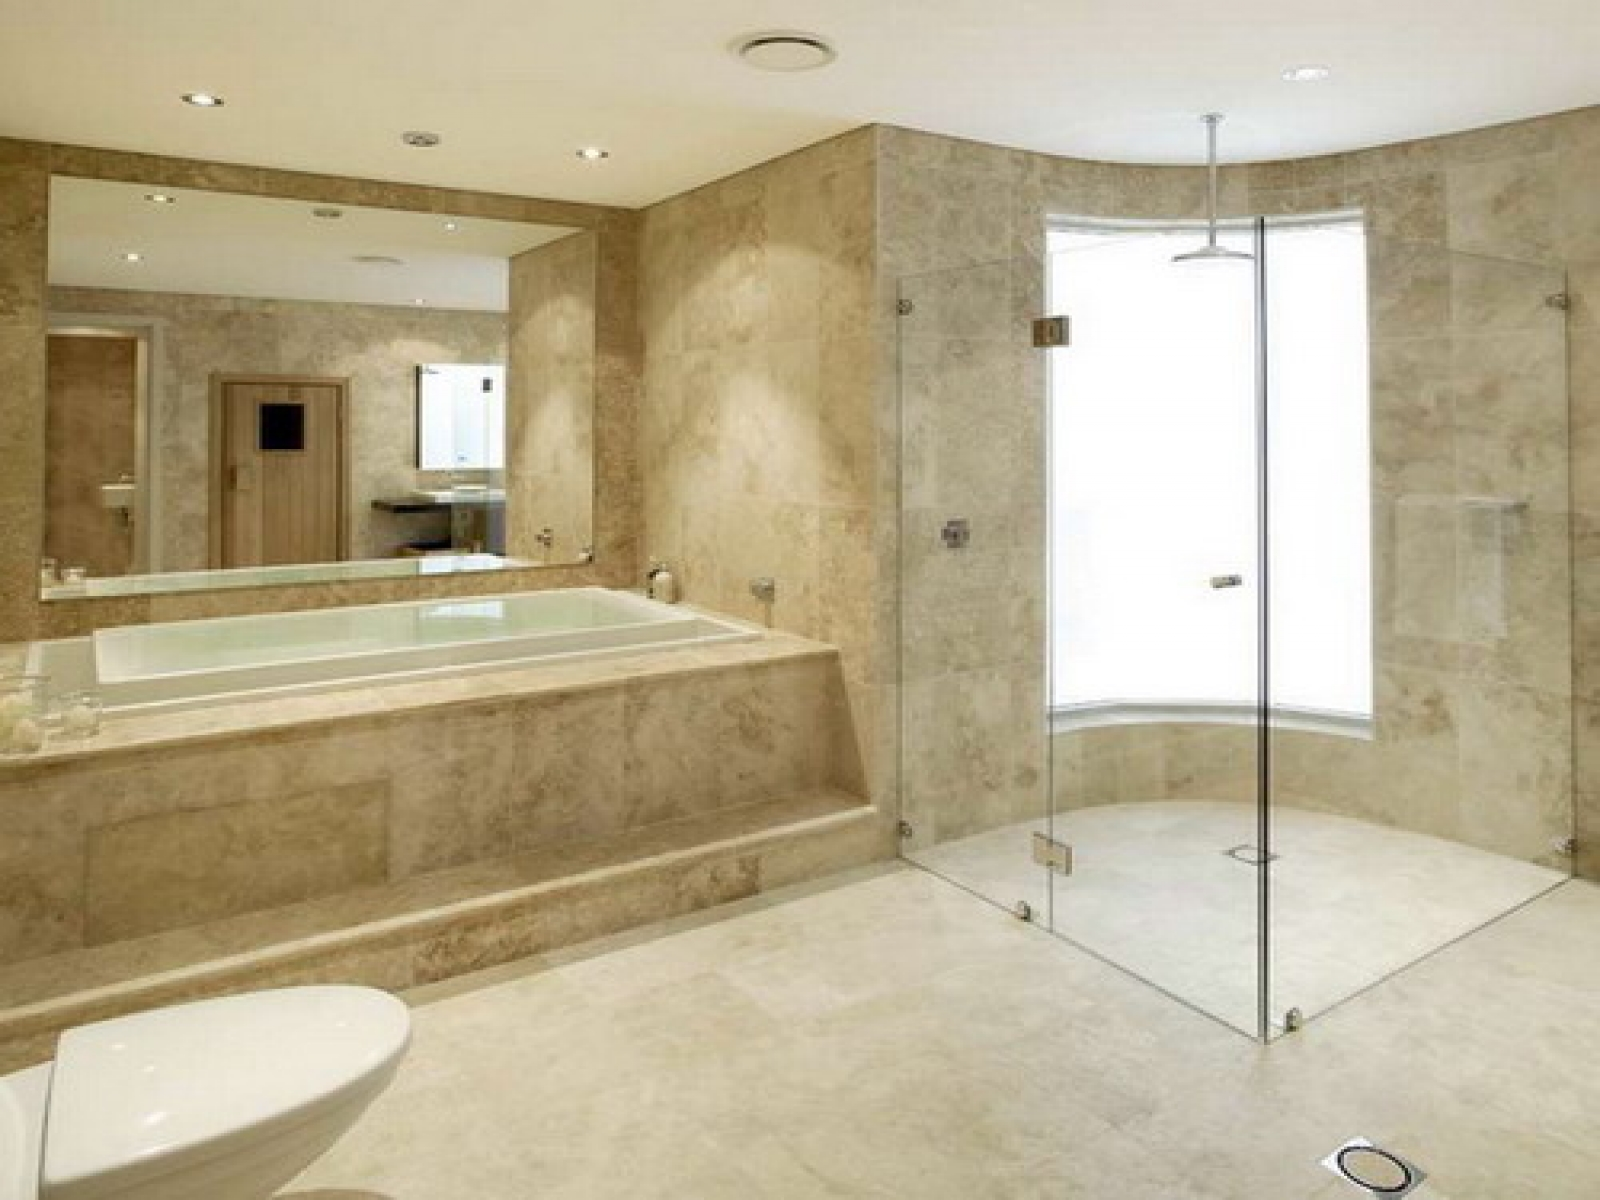 20 amazing pictures and ideas of travertine shower tile for Bathtub pictures designs